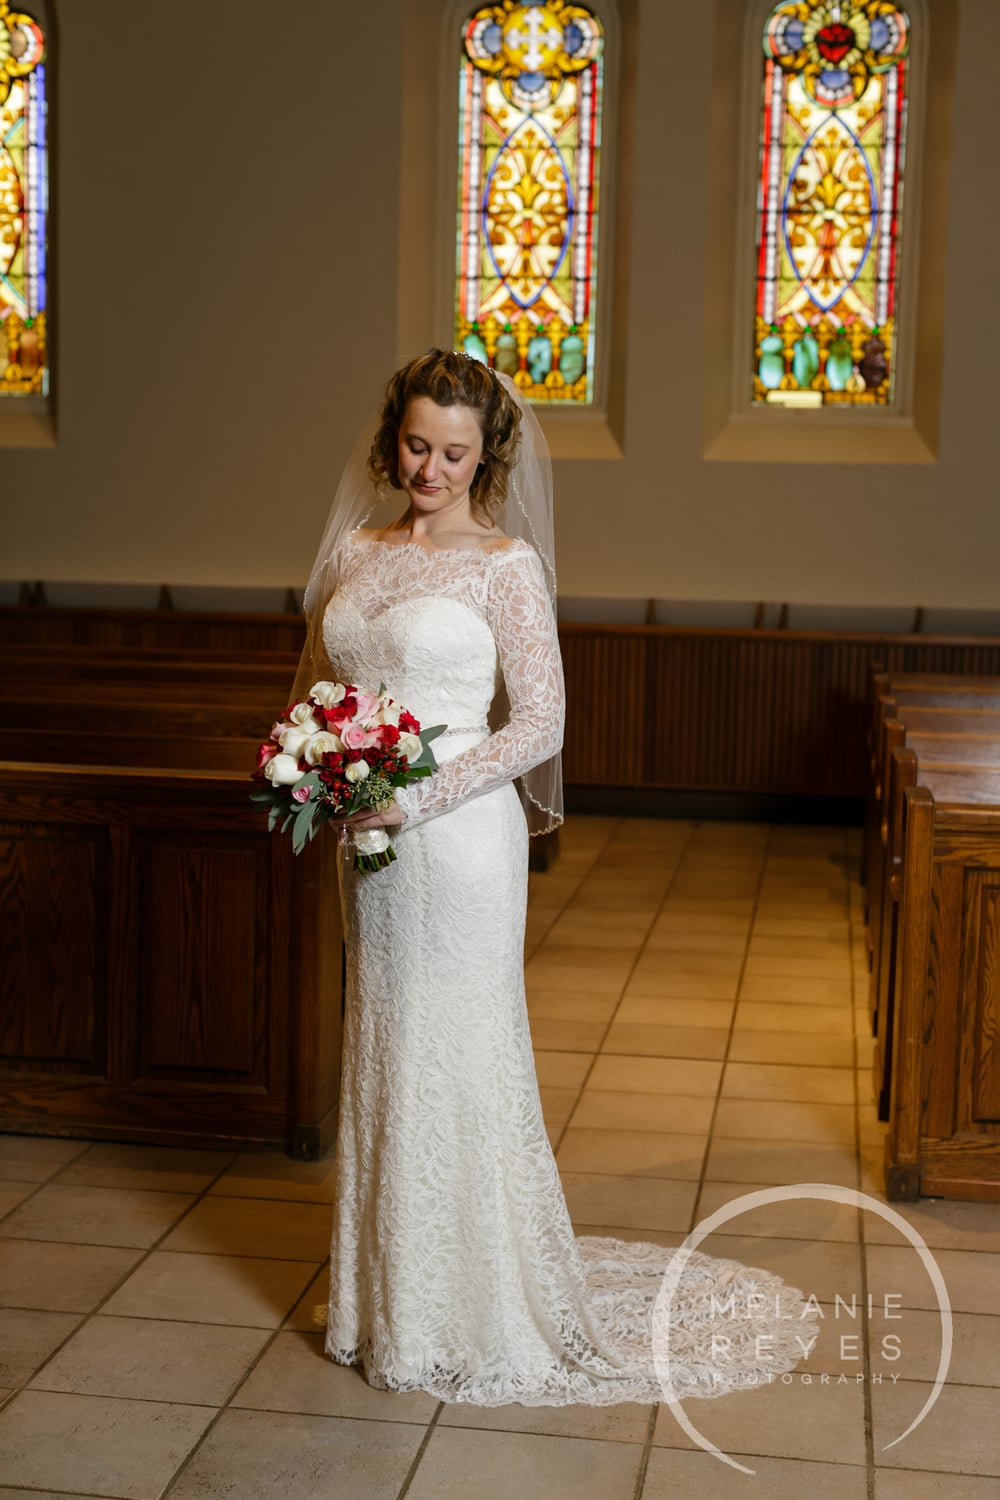 2015_ann_arbor_wedding_photographer_melaniereyes_007.JPG